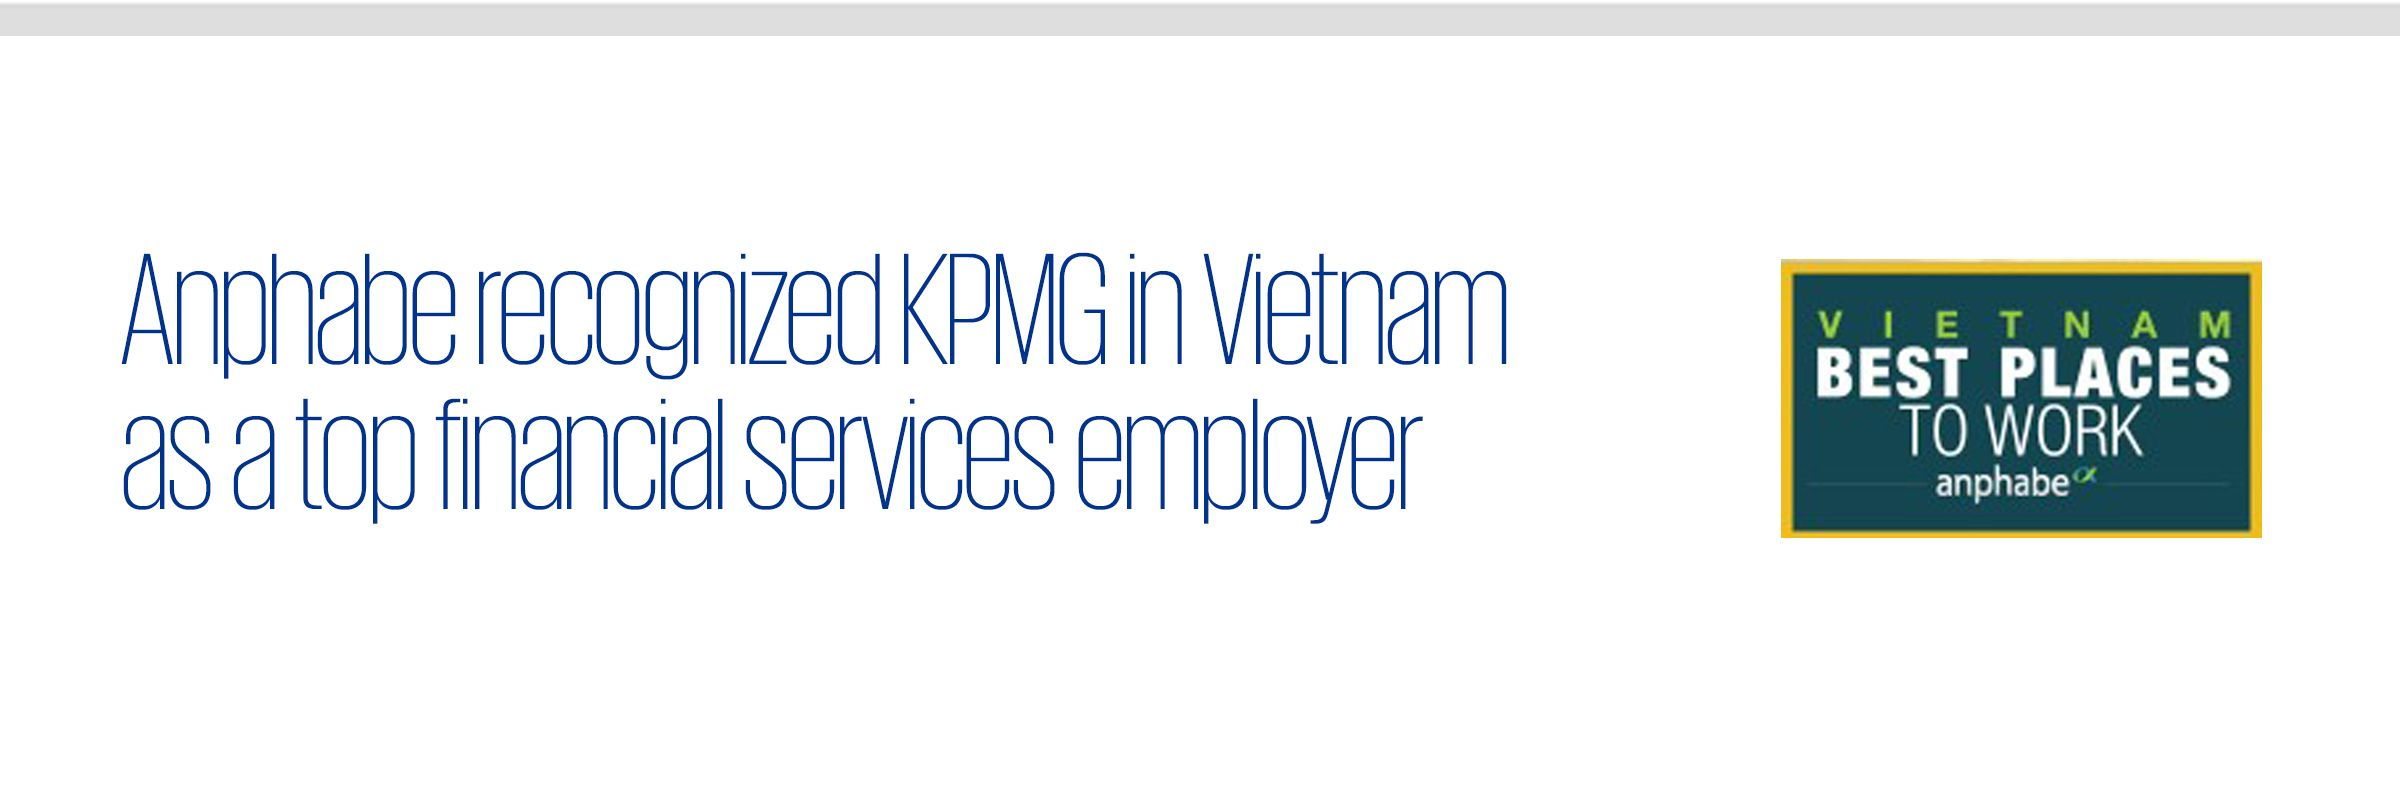 Anphabe recognized KPMG in Vietnam as a top financial services employer